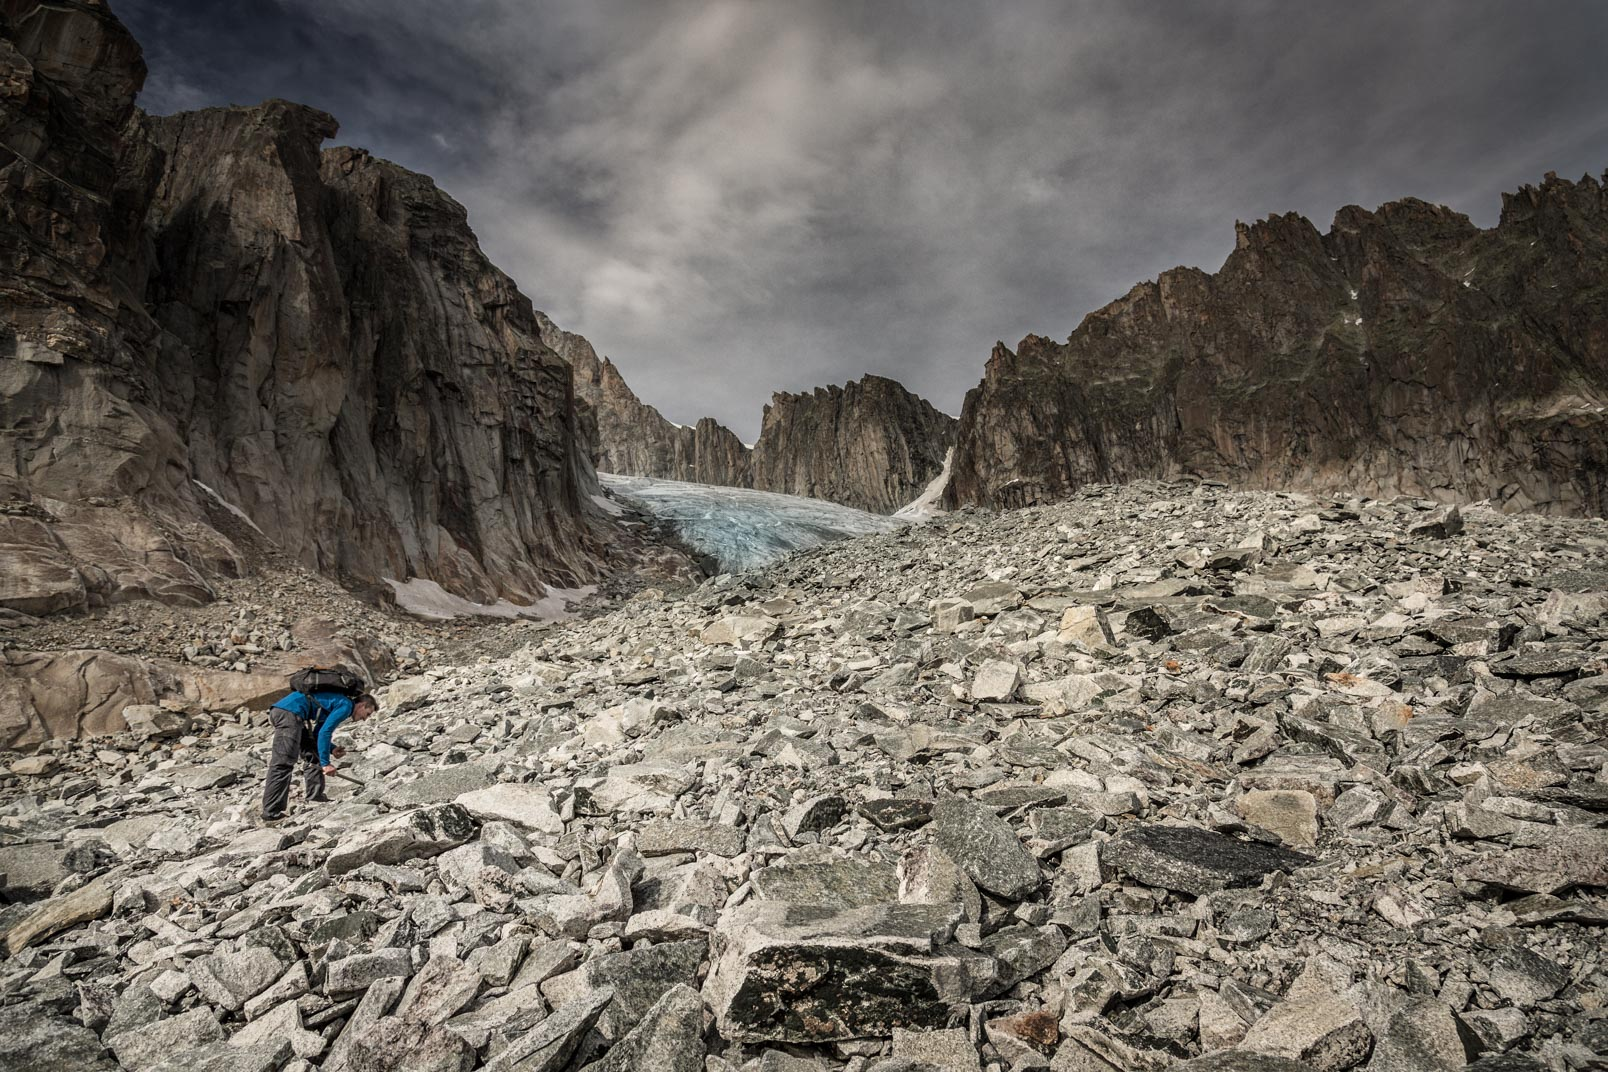 needle in a heystack | Stefan Kuerzi - Adventure Photography